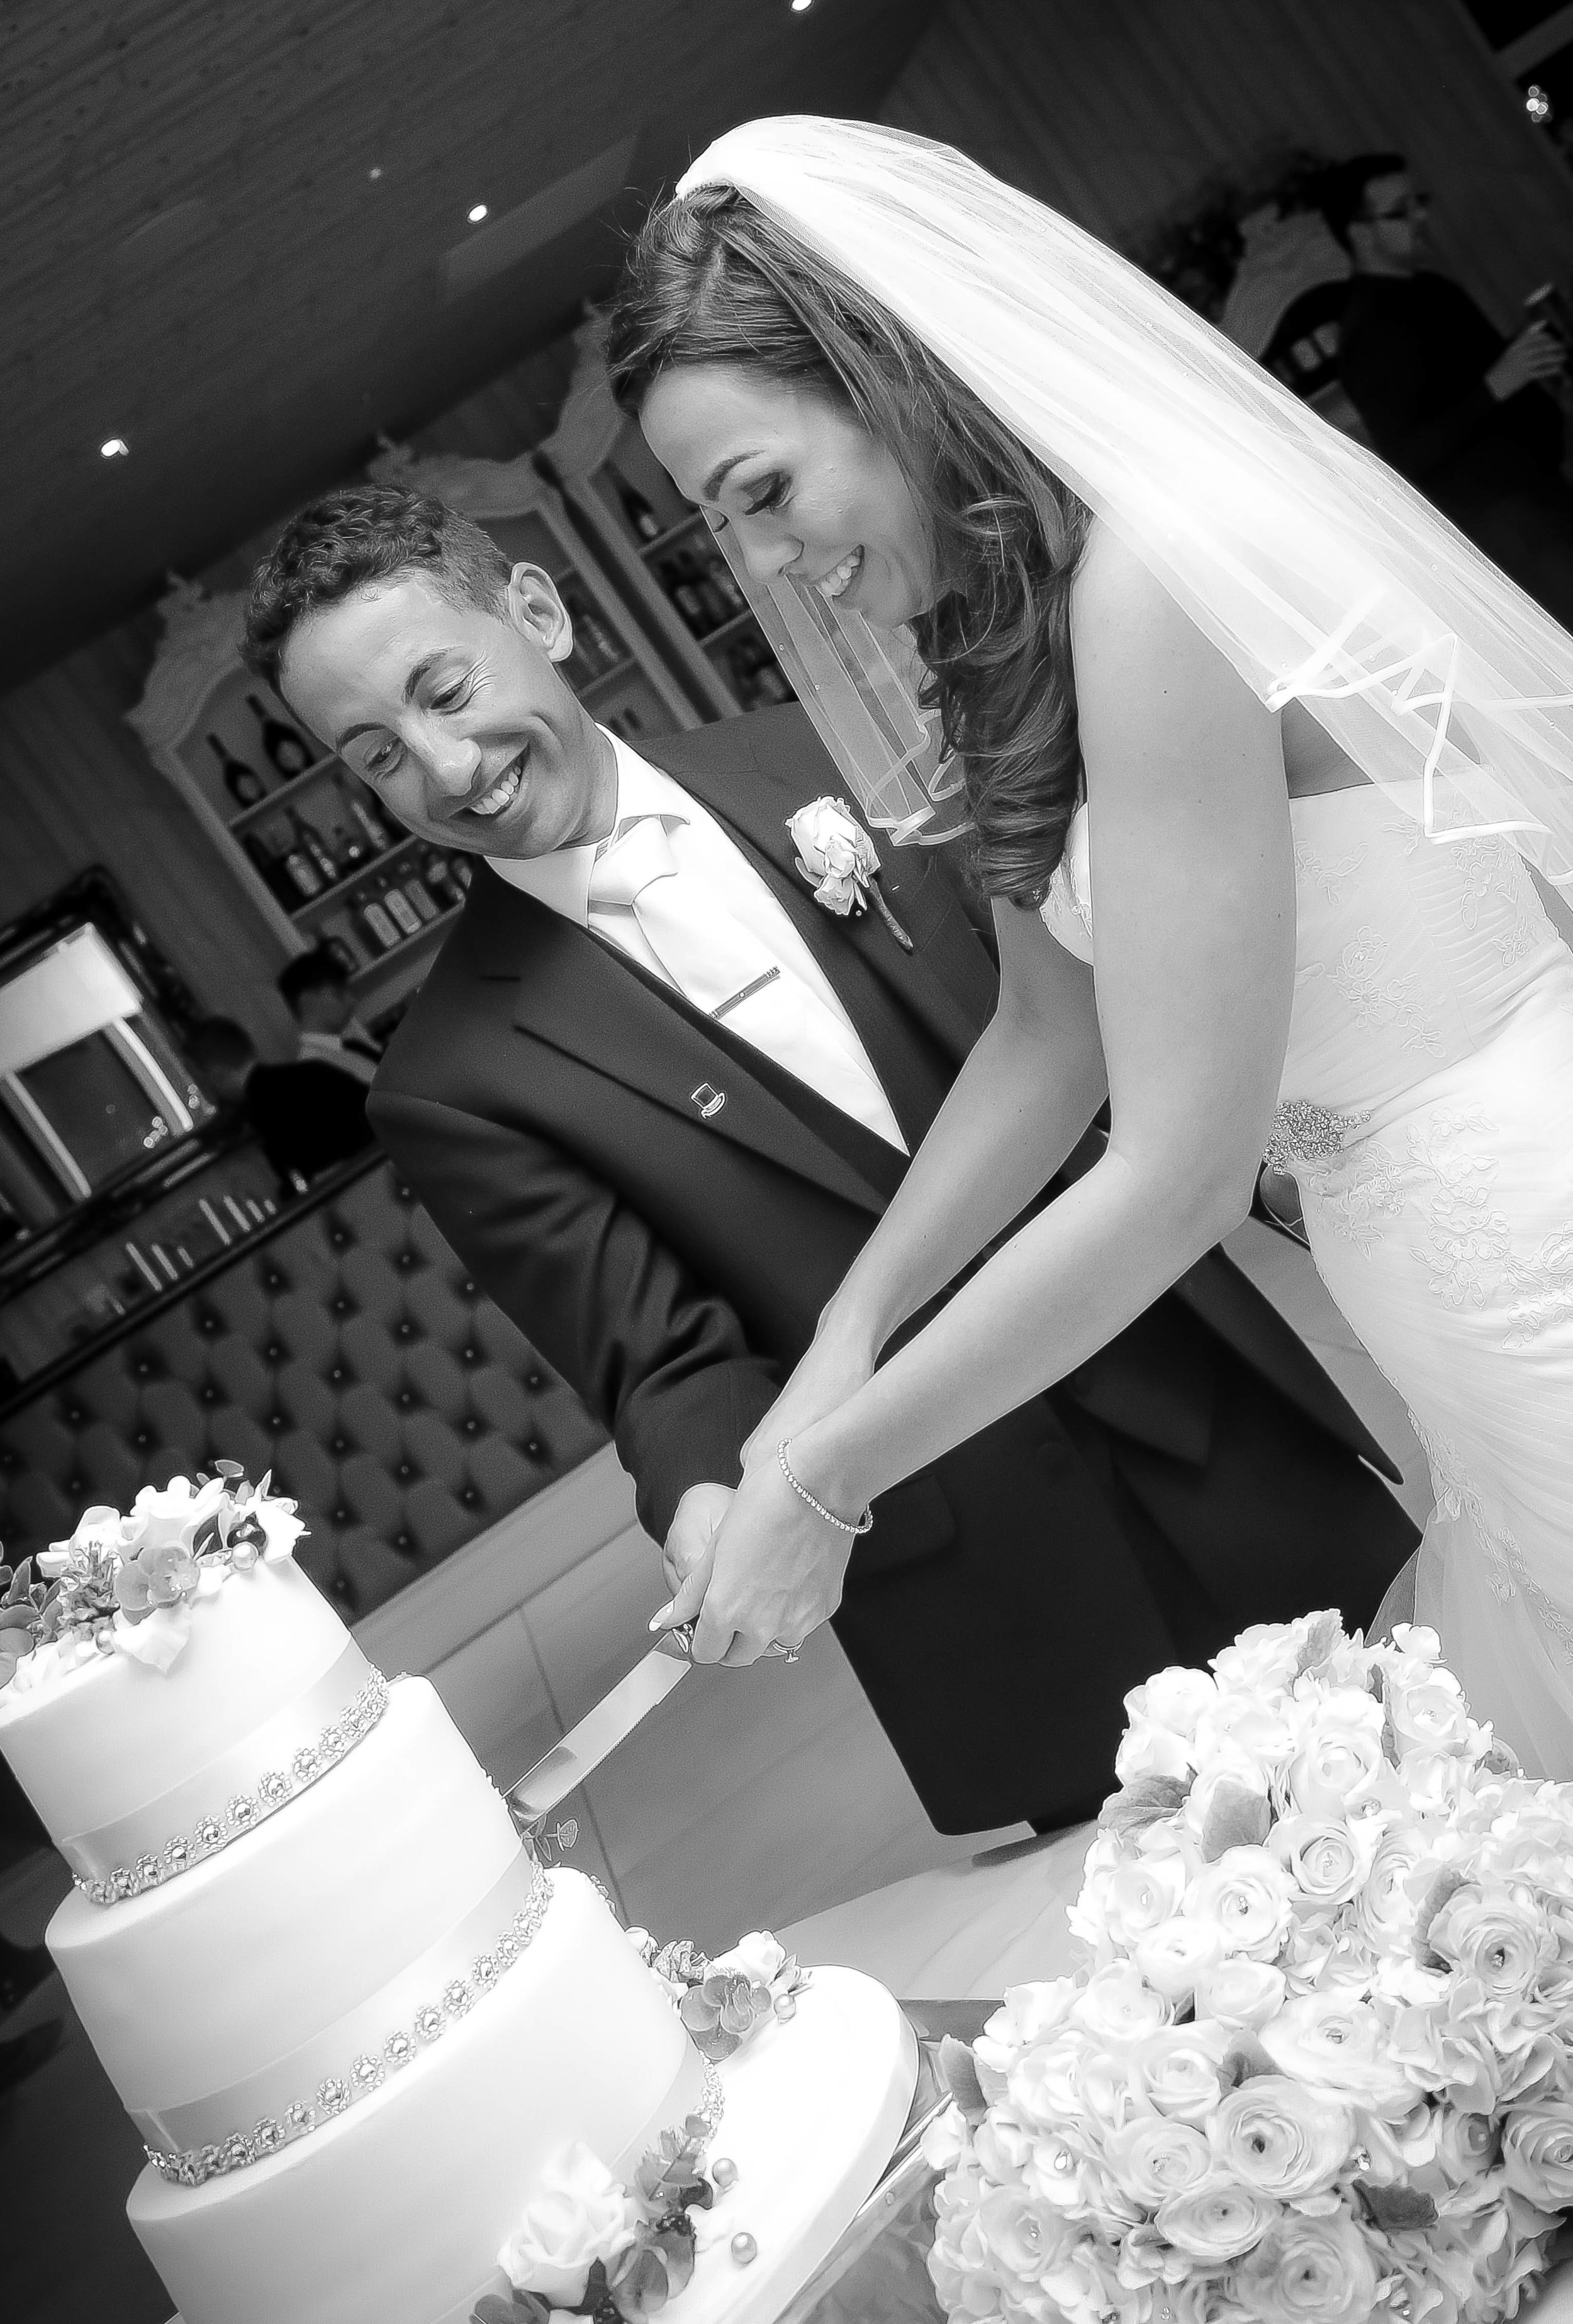 Weddings at the shankly hotel liverpool-139.jpg